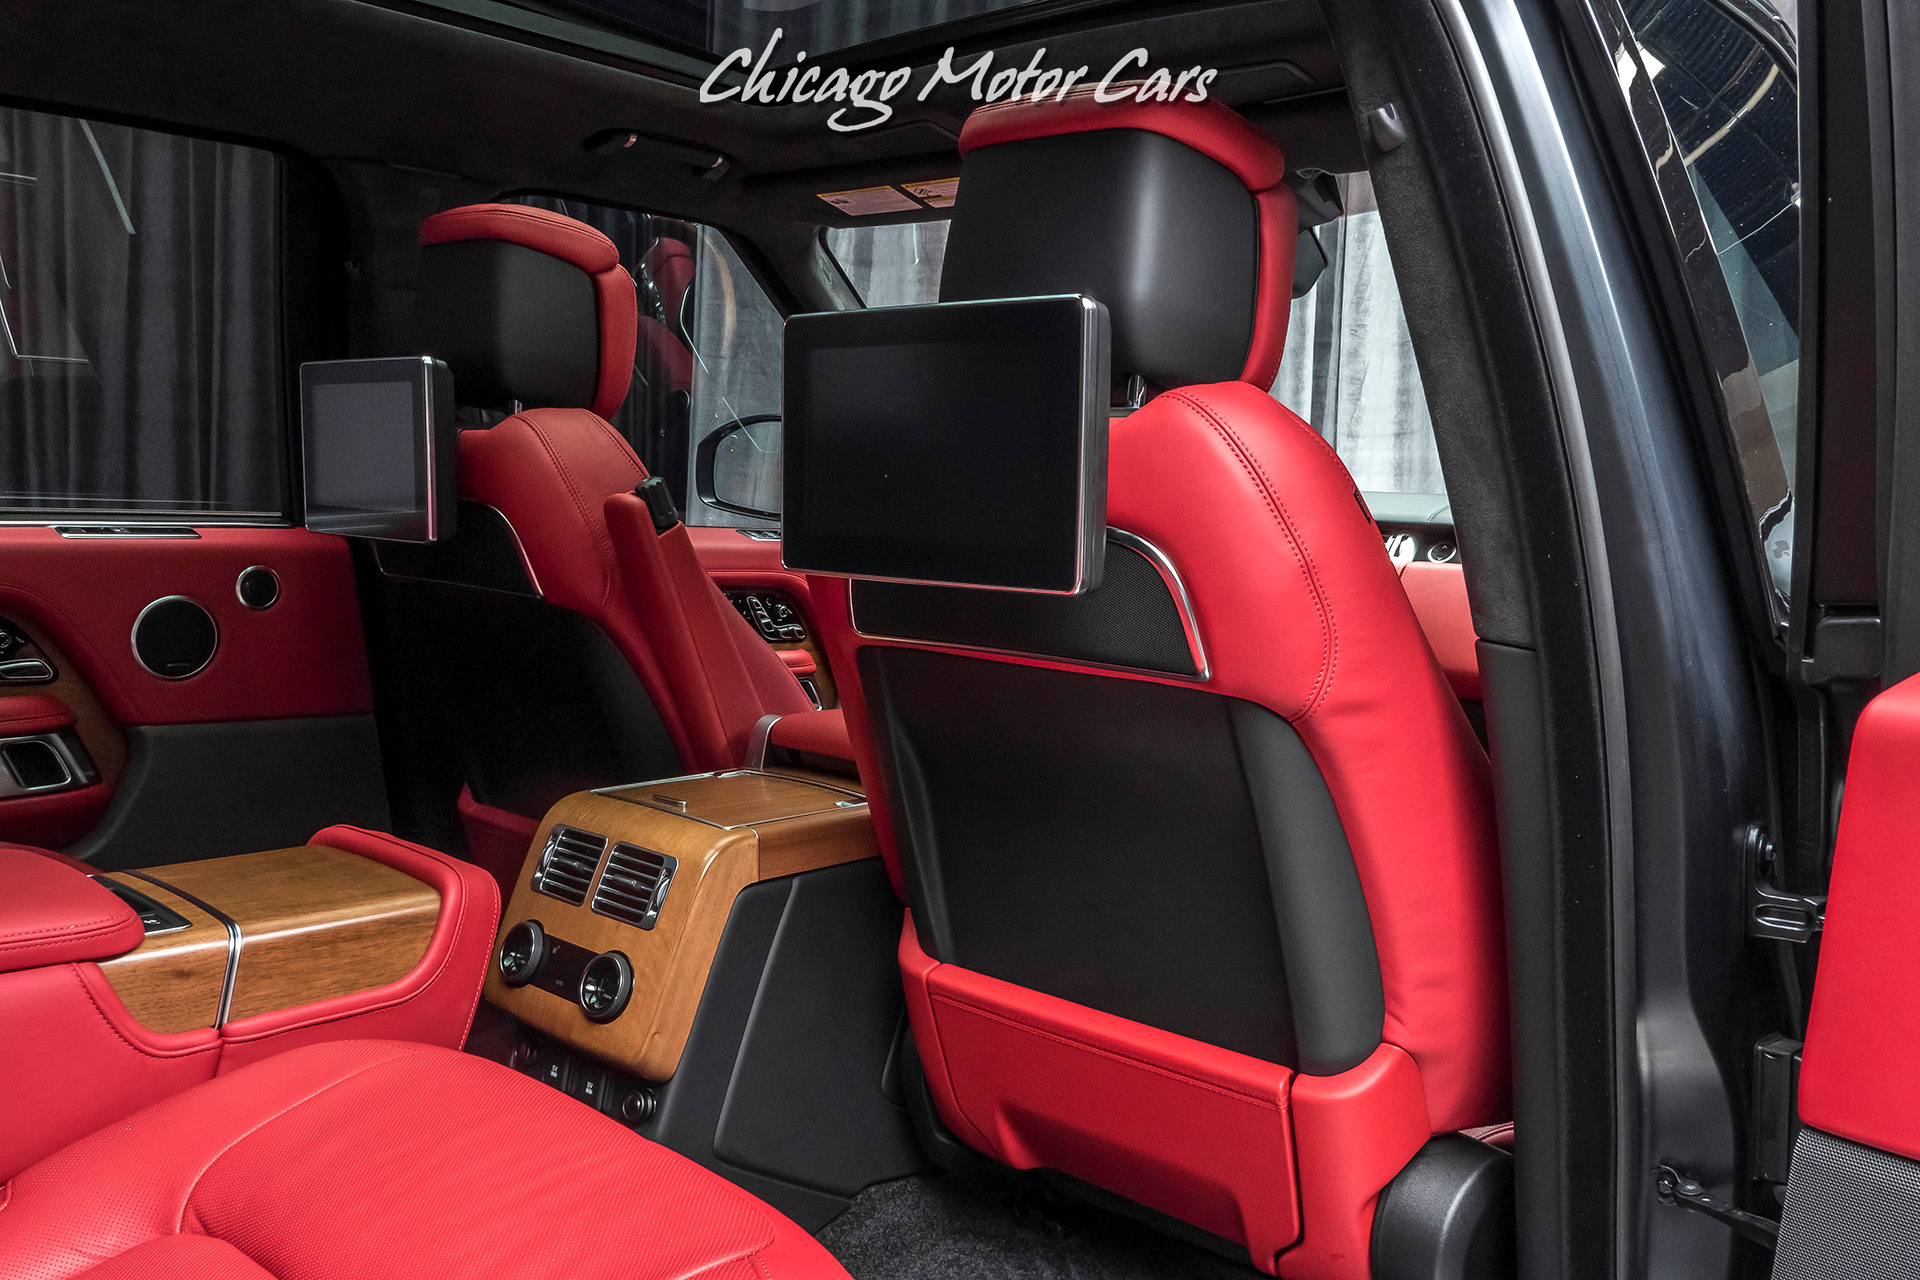 Used-2019-Land-Rover-Range-Rover-Autobiography-LWB-RARE-Matte-Black-REAR-SEAT-ENTERTAINMENT